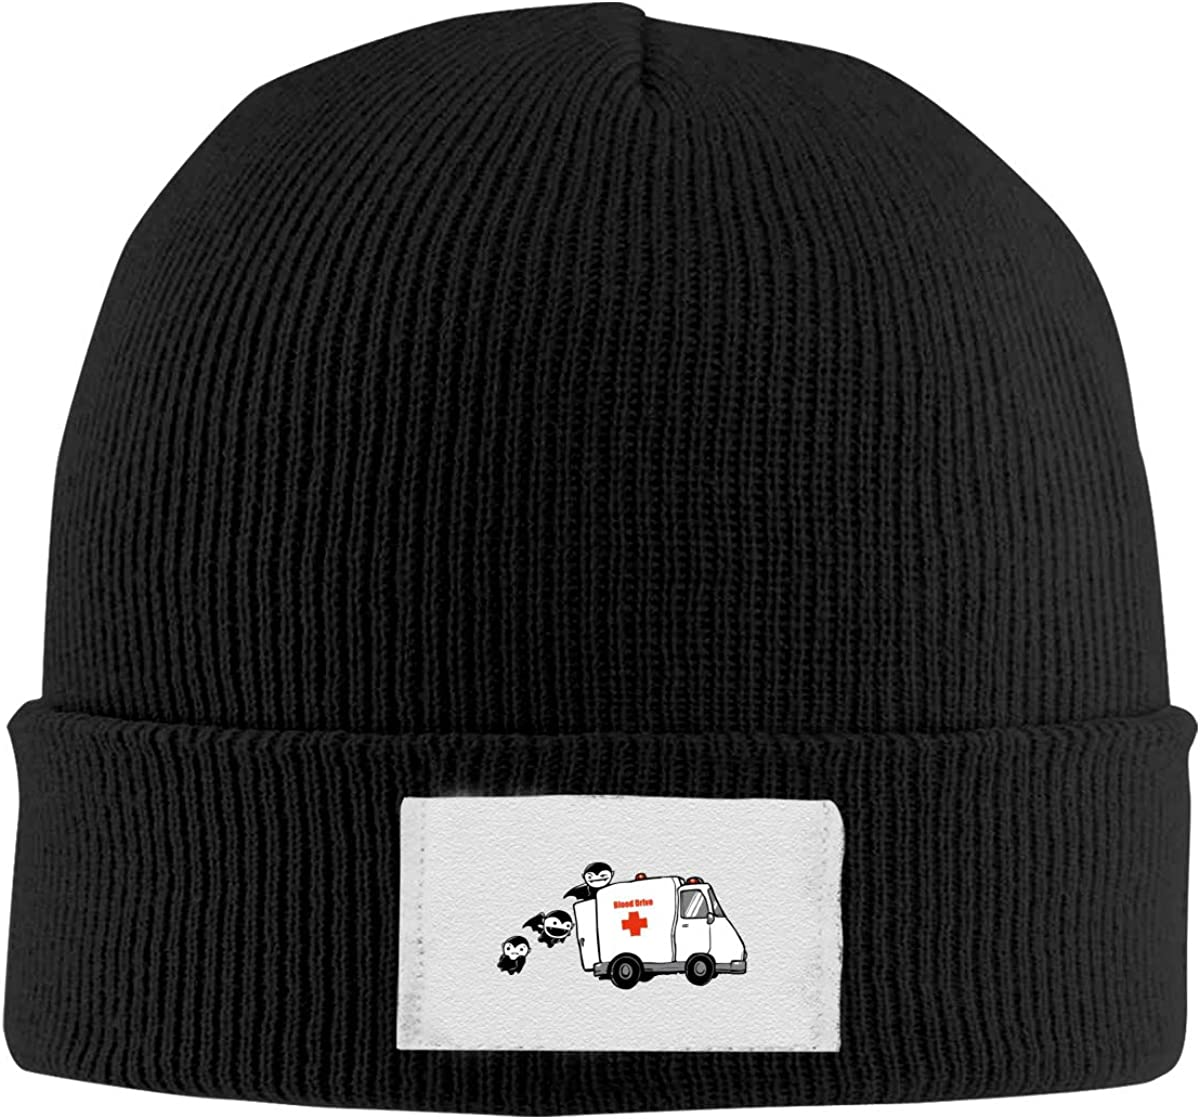 Stretchy Cuff Beanie Hat Black Dunpaiaa Skull Caps Blood Drive Vampires Winter Warm Knit Hats